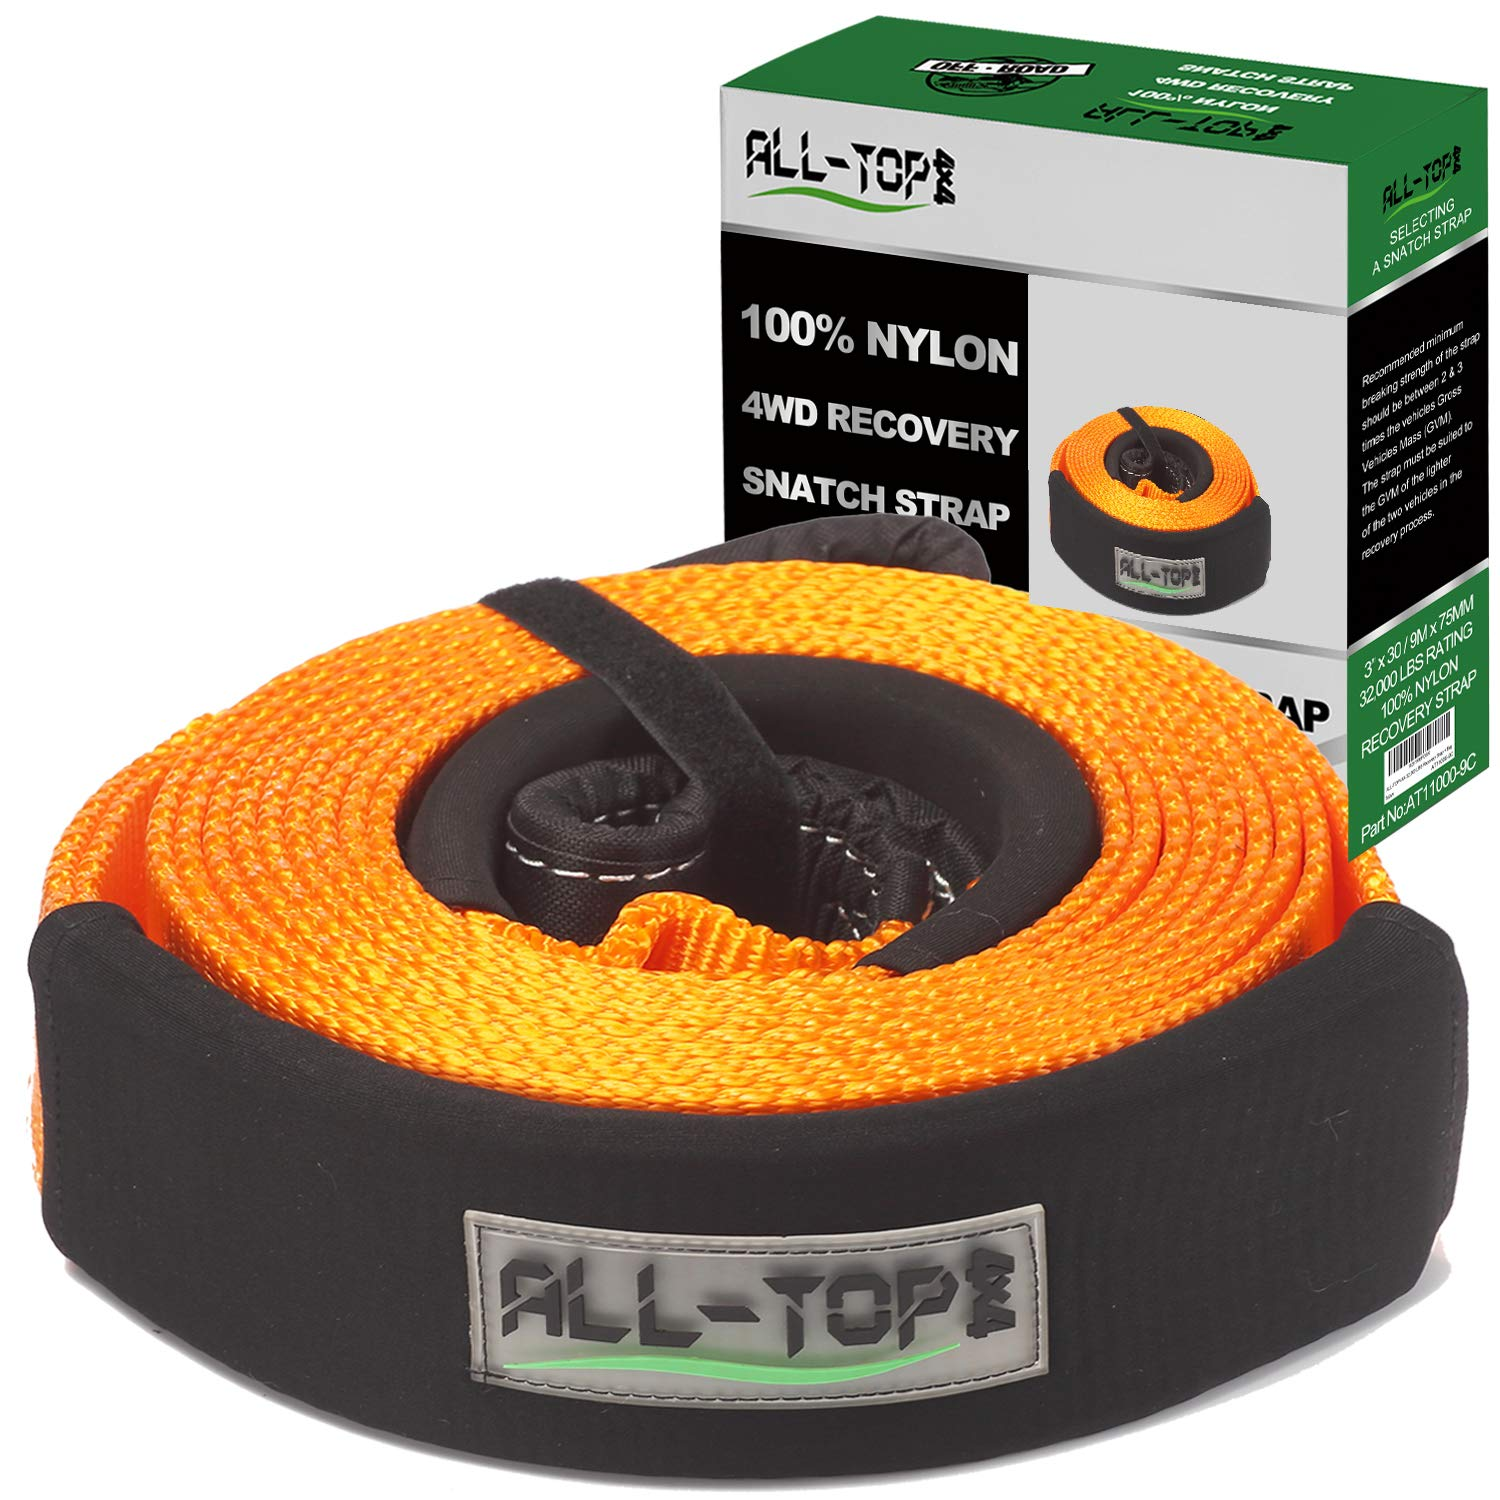 ALL-TOP 100% Nylon Recovery Snatch Strap - 3 inch x 30 ft - Heavy Duty Towing Strap (32,000 lbs) with 22% Elongation - Triple Reinforced Loop Adjustable Protector Sleeve by ALL-TOP